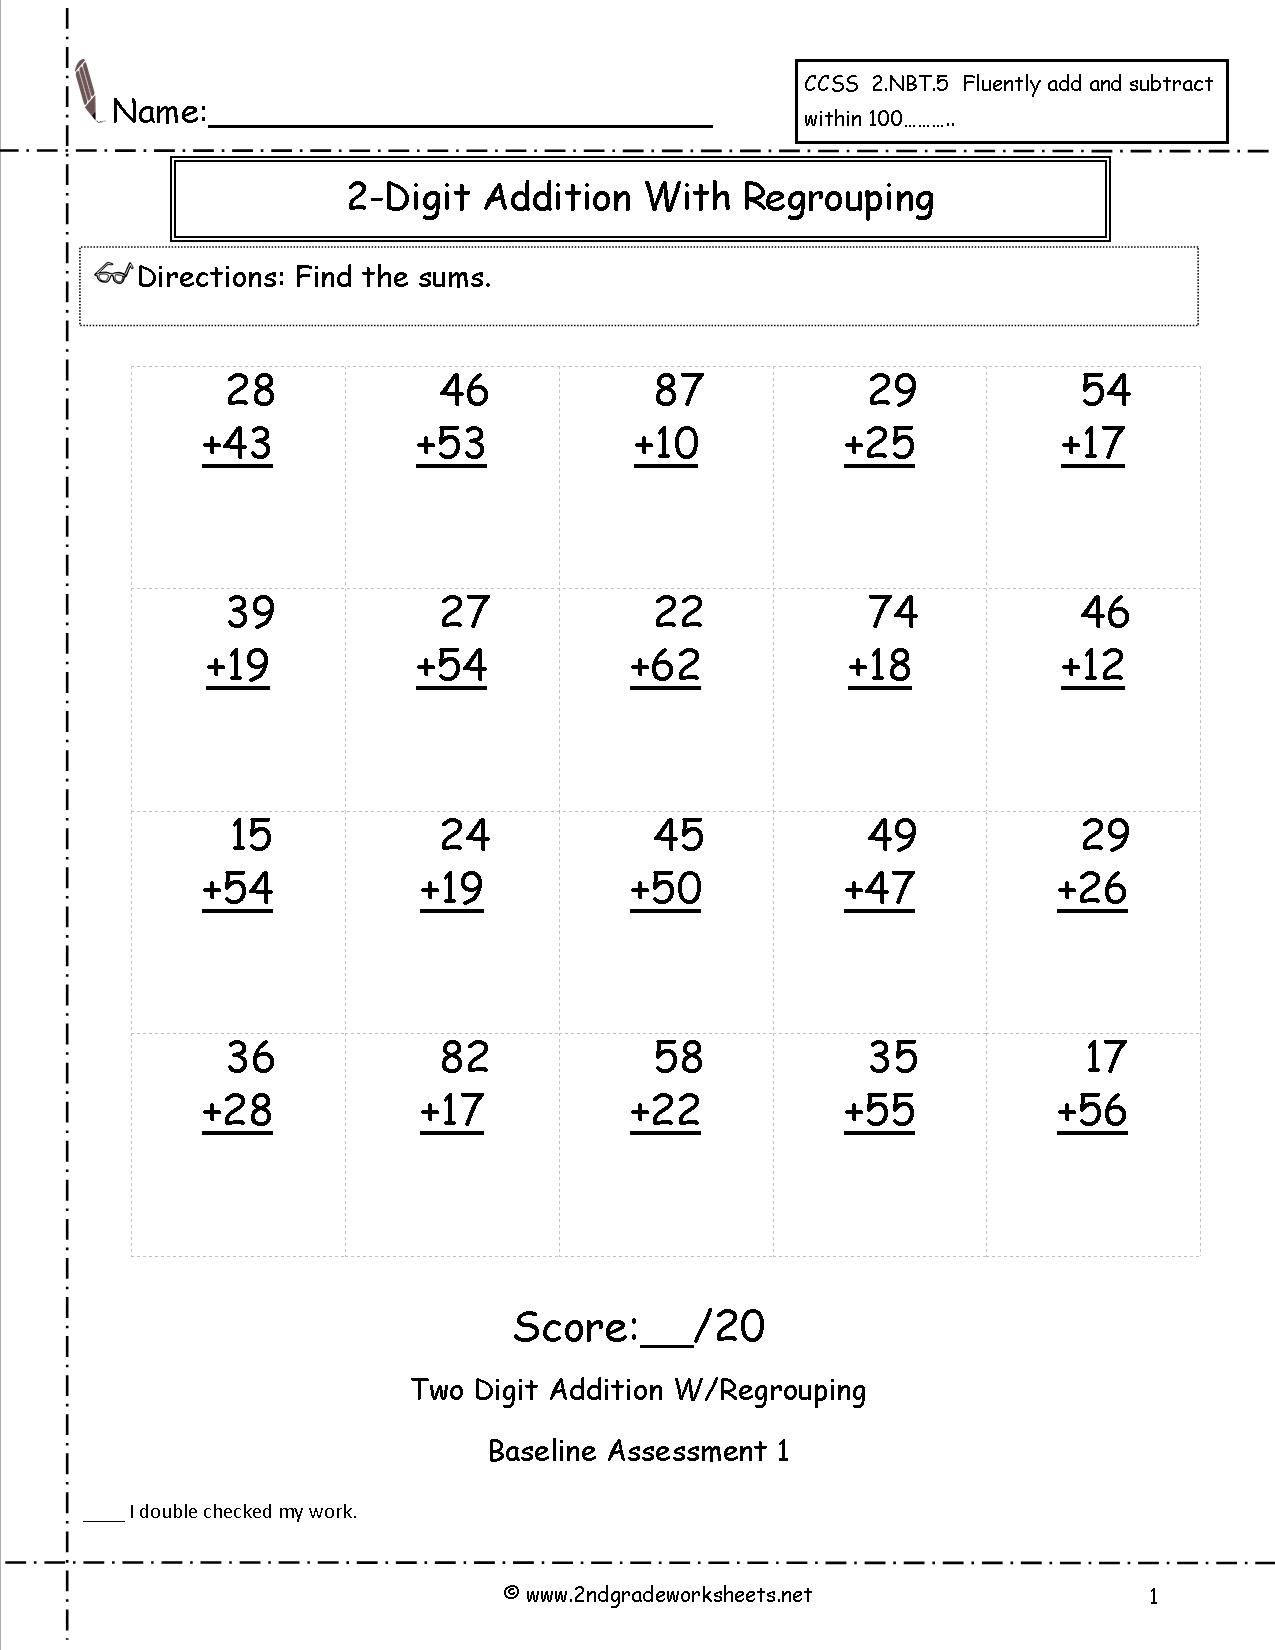 Two Digit Addition Worksheets   Free math worksheets [ 1650 x 1275 Pixel ]